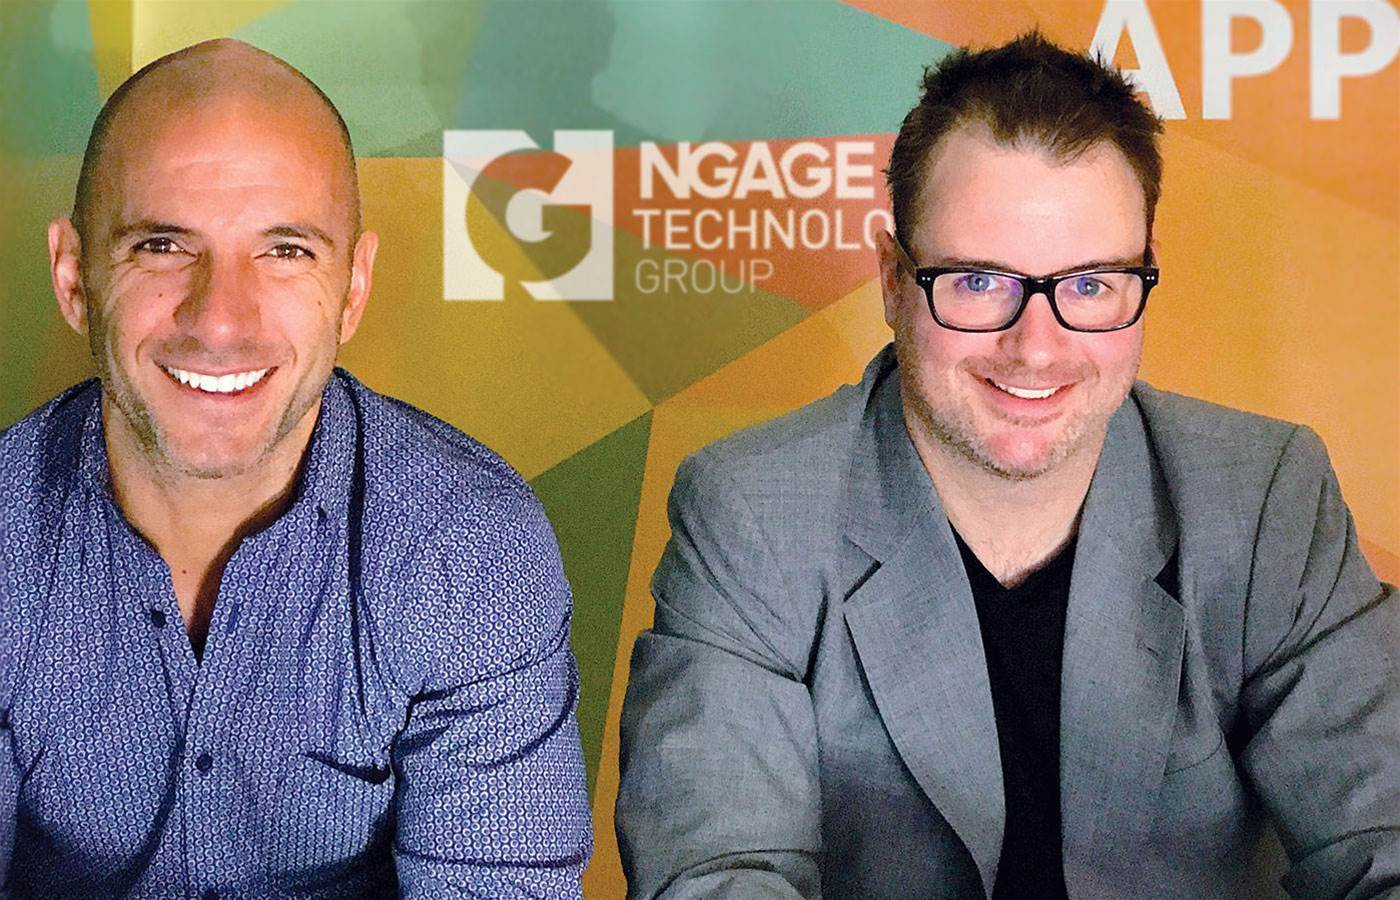 NGage Technology co-founder exits Cirrus Networks